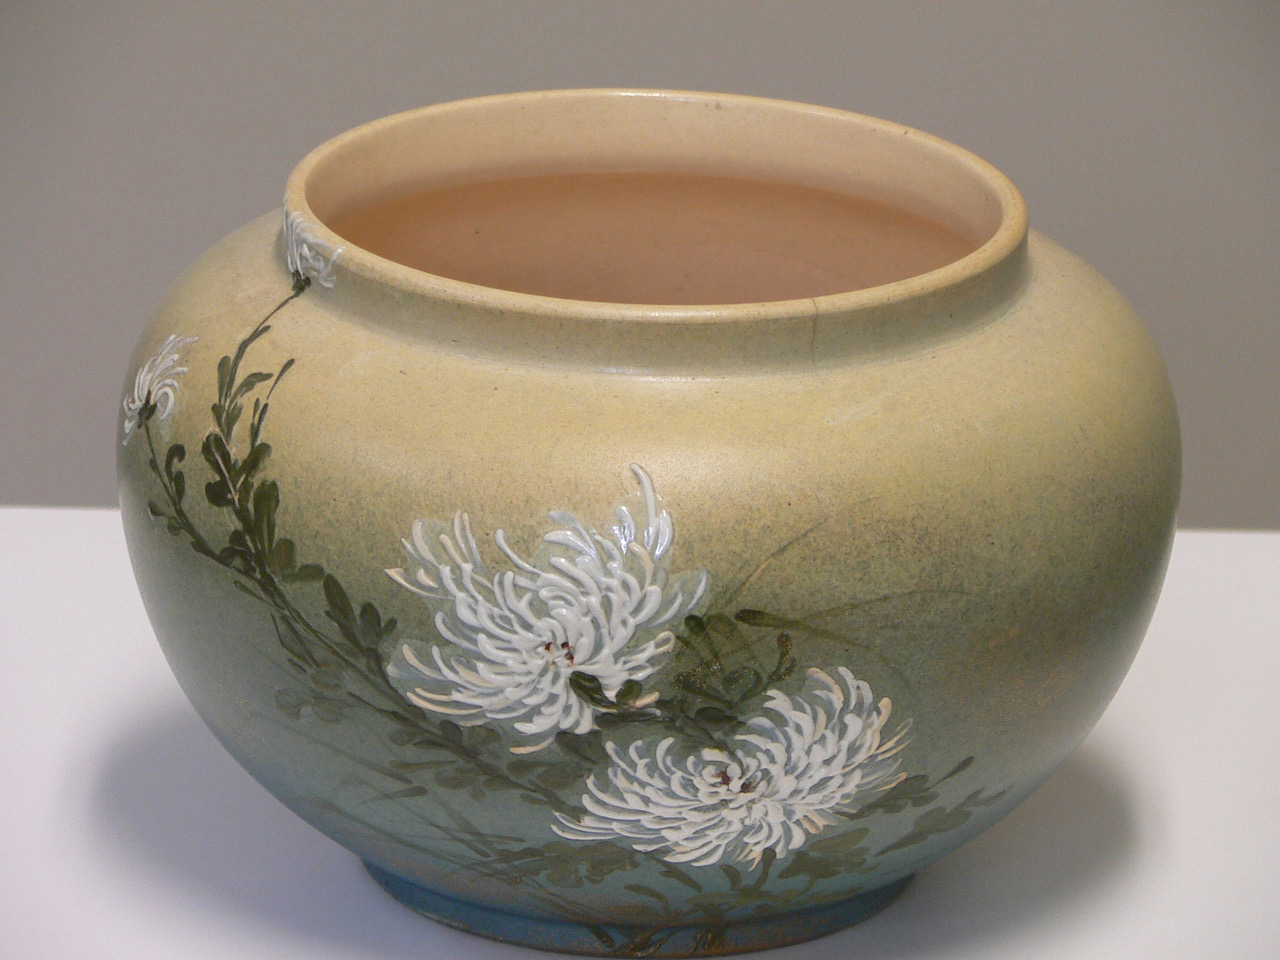 Artist : Fry, Laura Anne   Title : Bowl (Rookwood #95C)   Medium : ceramic   Date : 1885   Credit : Museum Purchase   Accession # : 1984.23